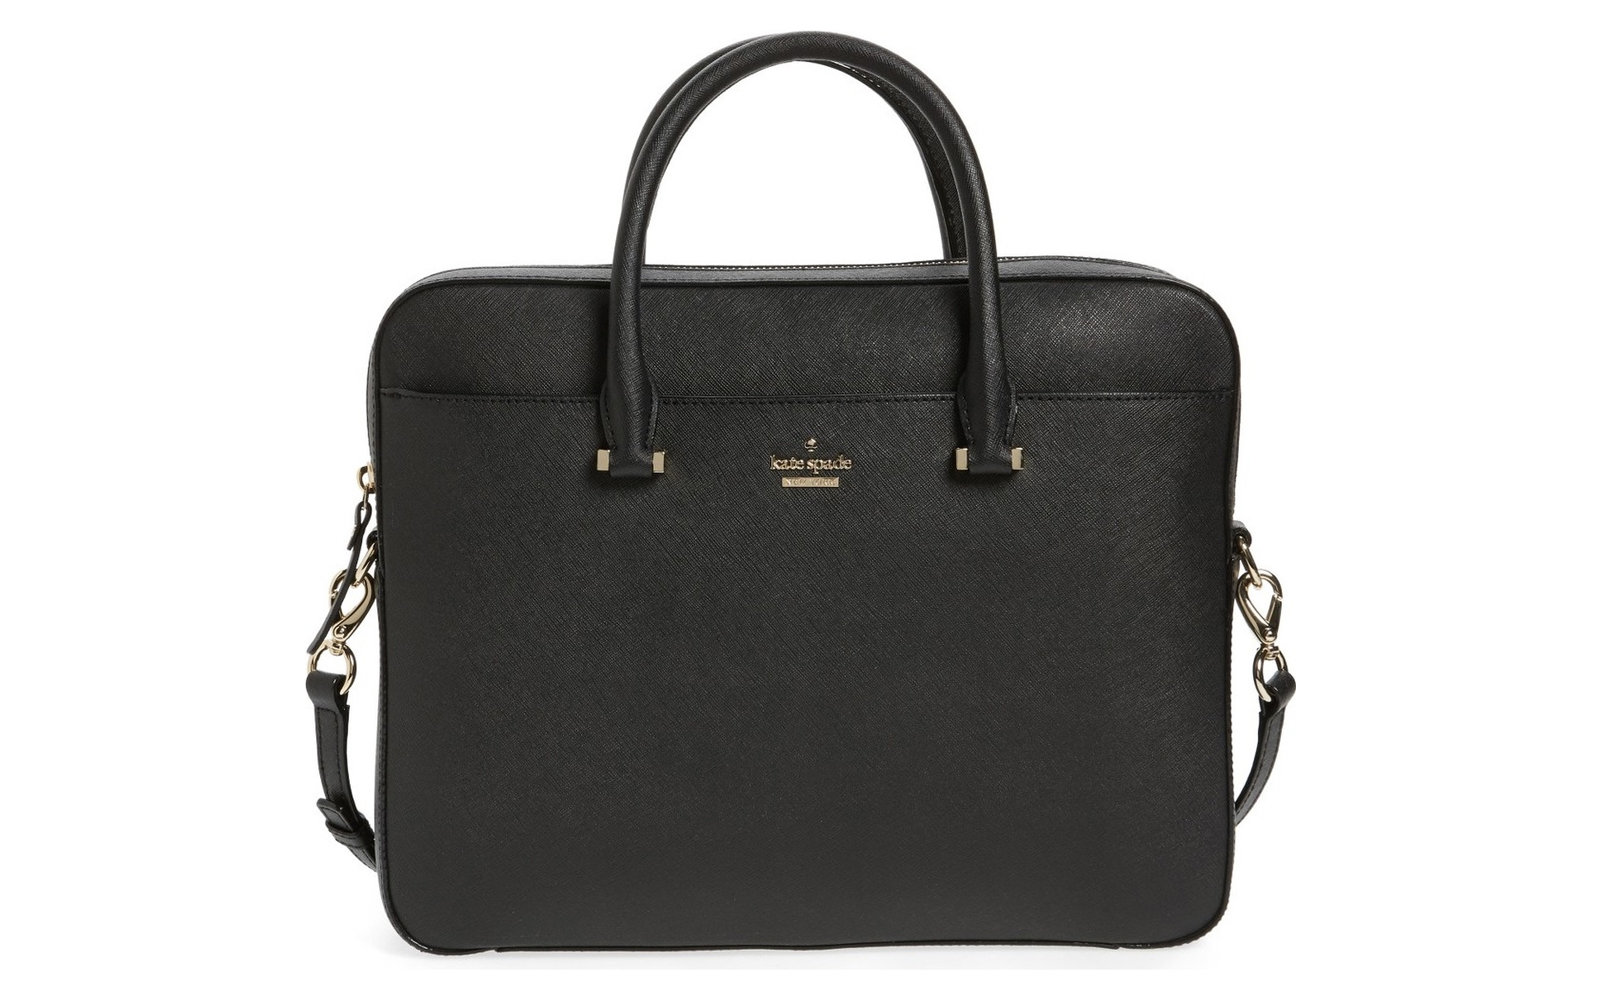 21 Stylish Laptop Bags For Business Travel Travel Leisure